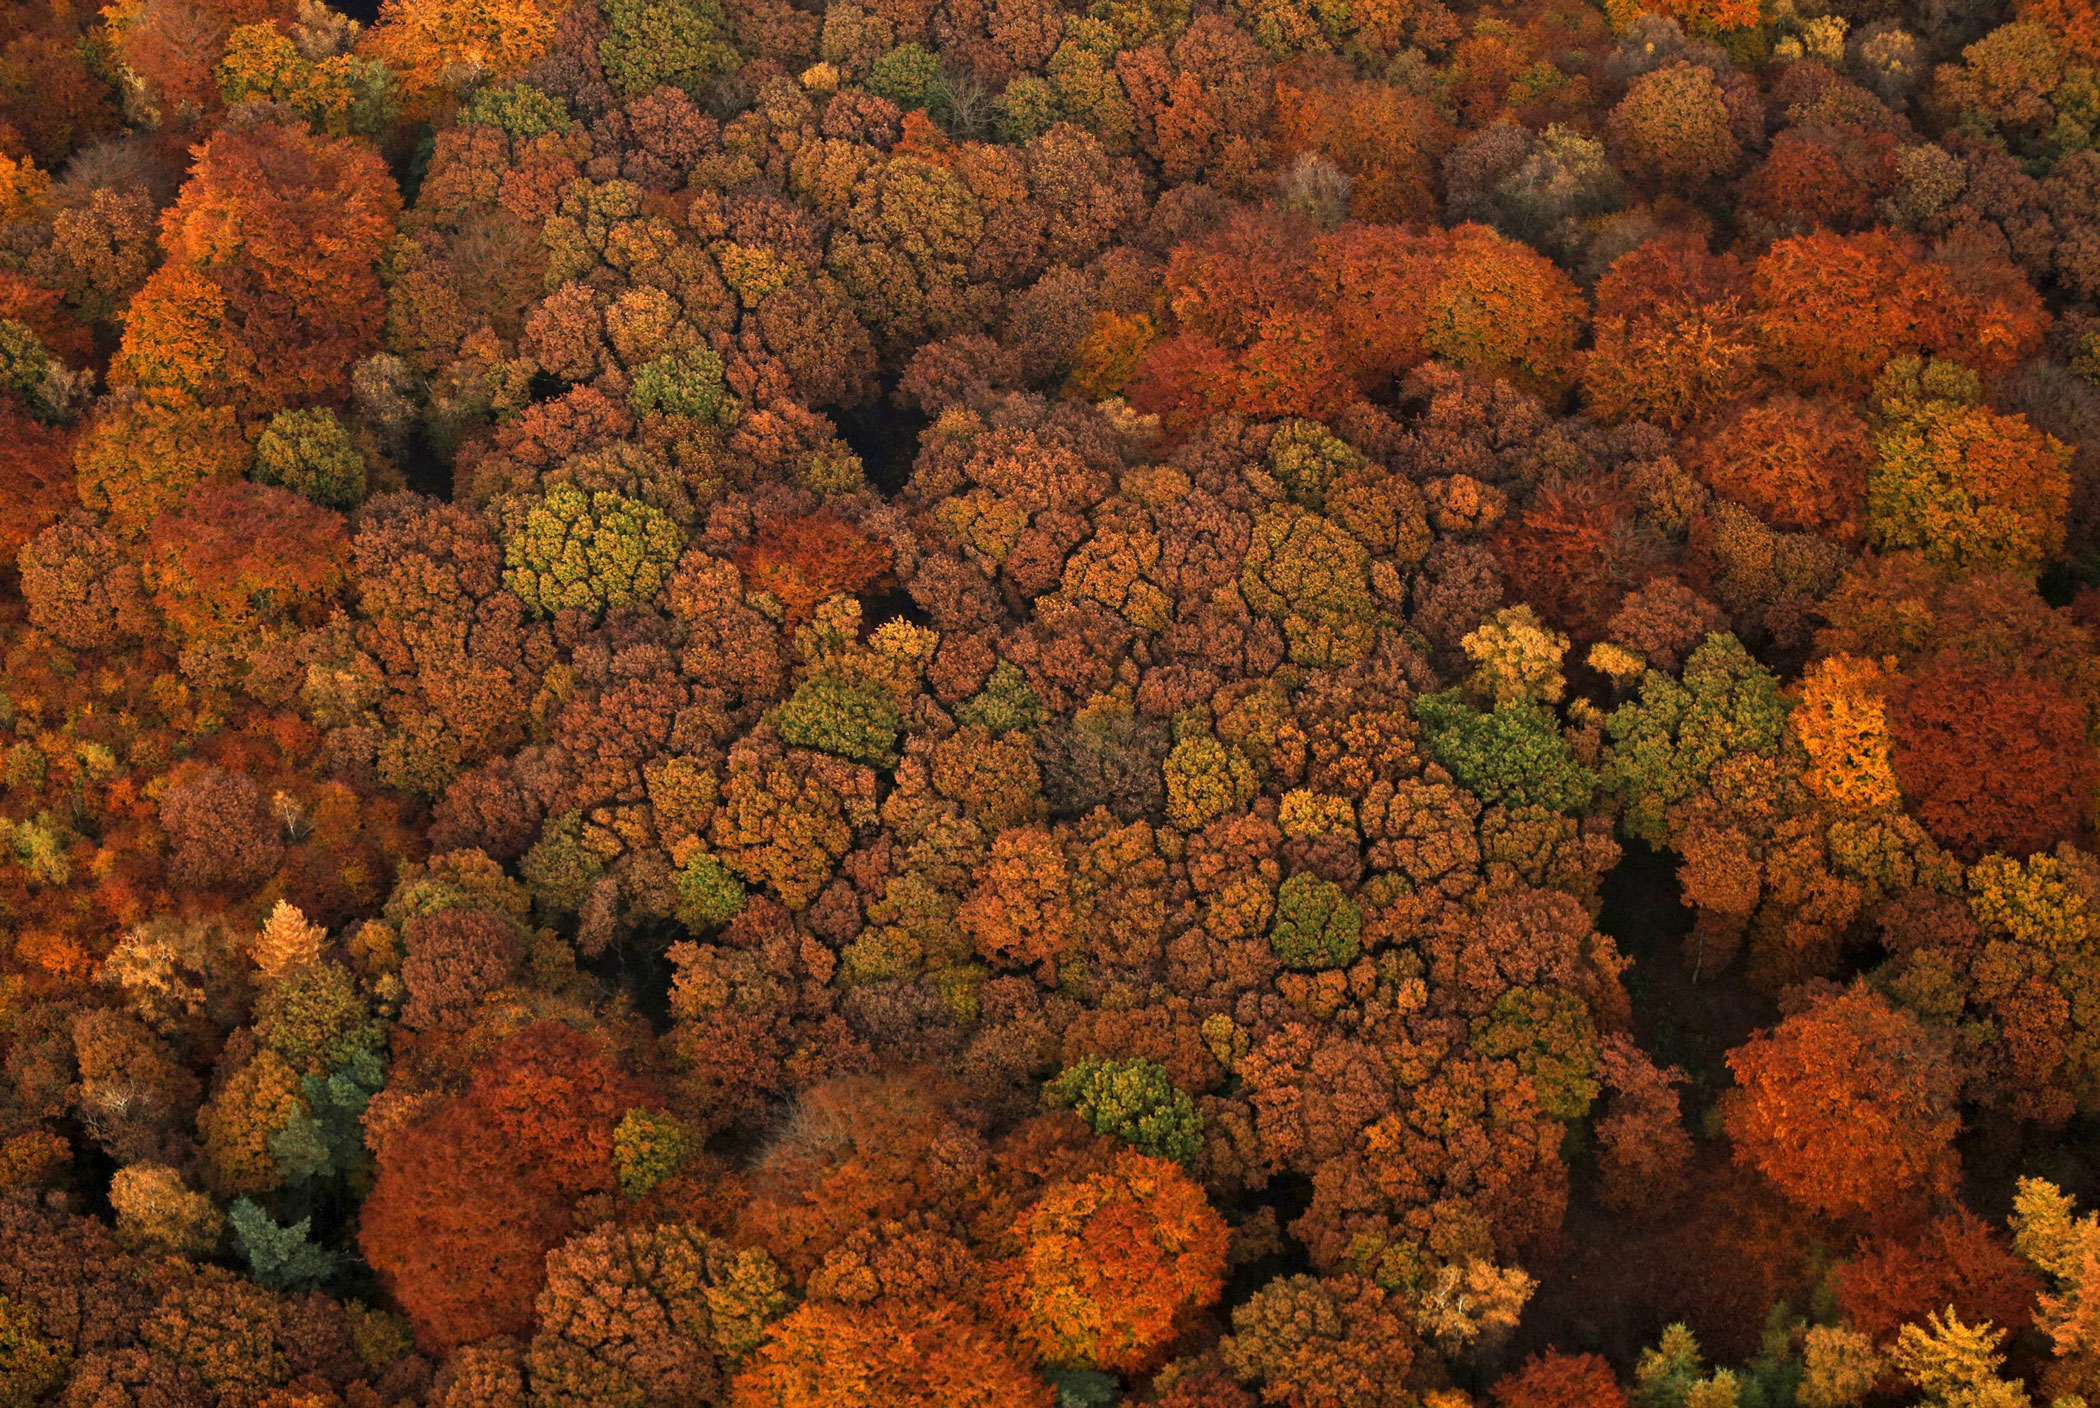 An aerial view shows a deciduous forest on a sunny autumn day in Recklinghausen, Germany on Oct. 31, 2015.